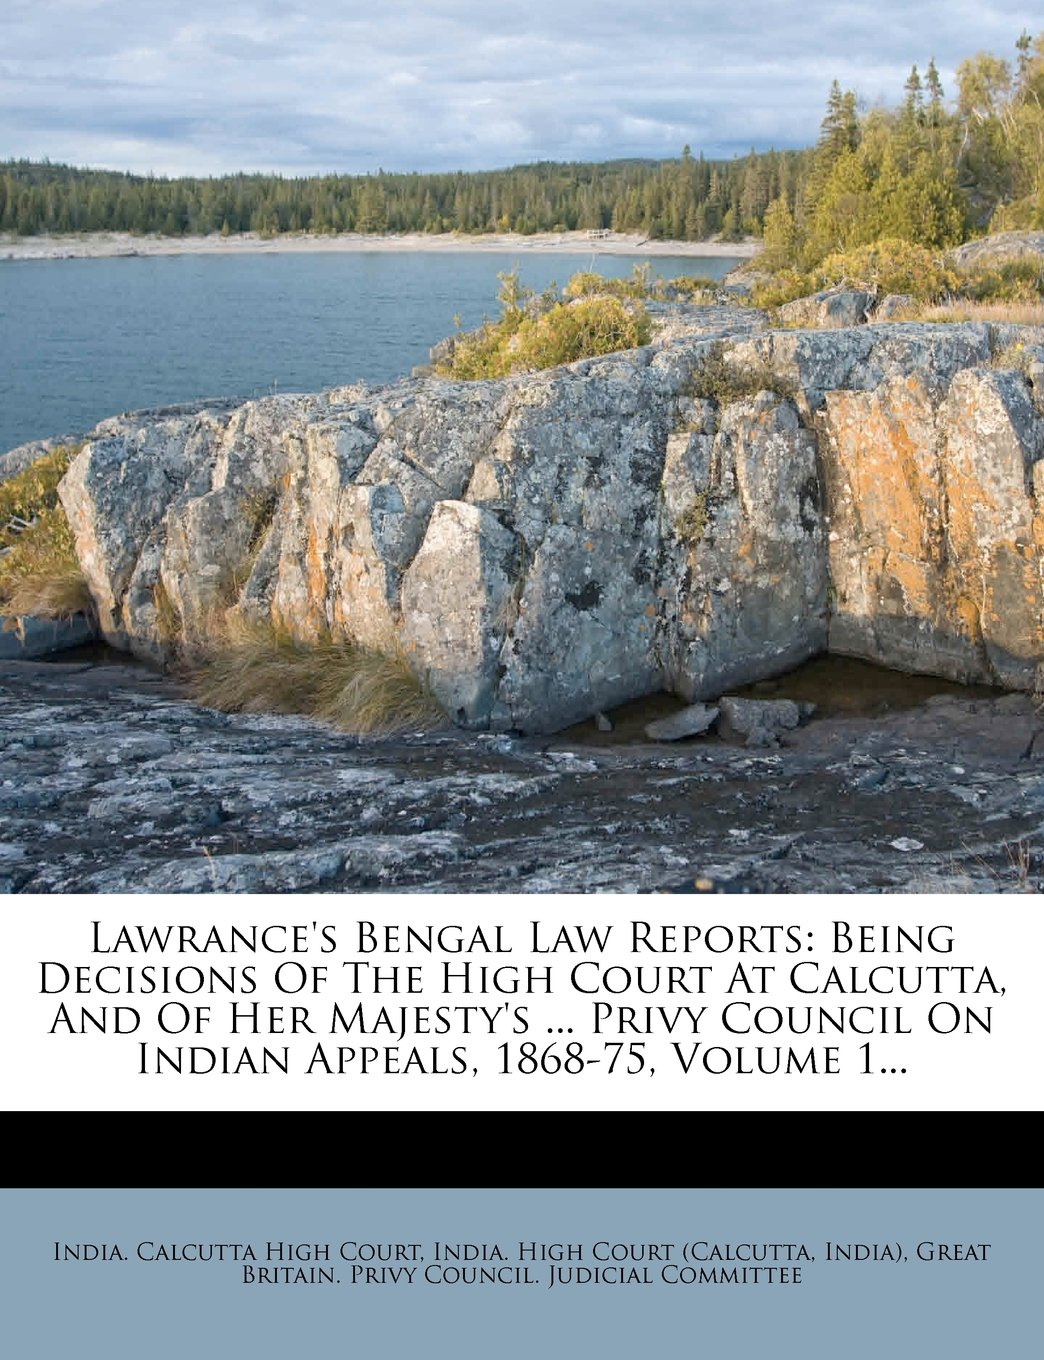 Lawrance's Bengal Law Reports: Being Decisions Of The High Court At Calcutta, And Of Her Majesty's ... Privy Council On Indian Appeals, 1868-75, Volume 1... pdf